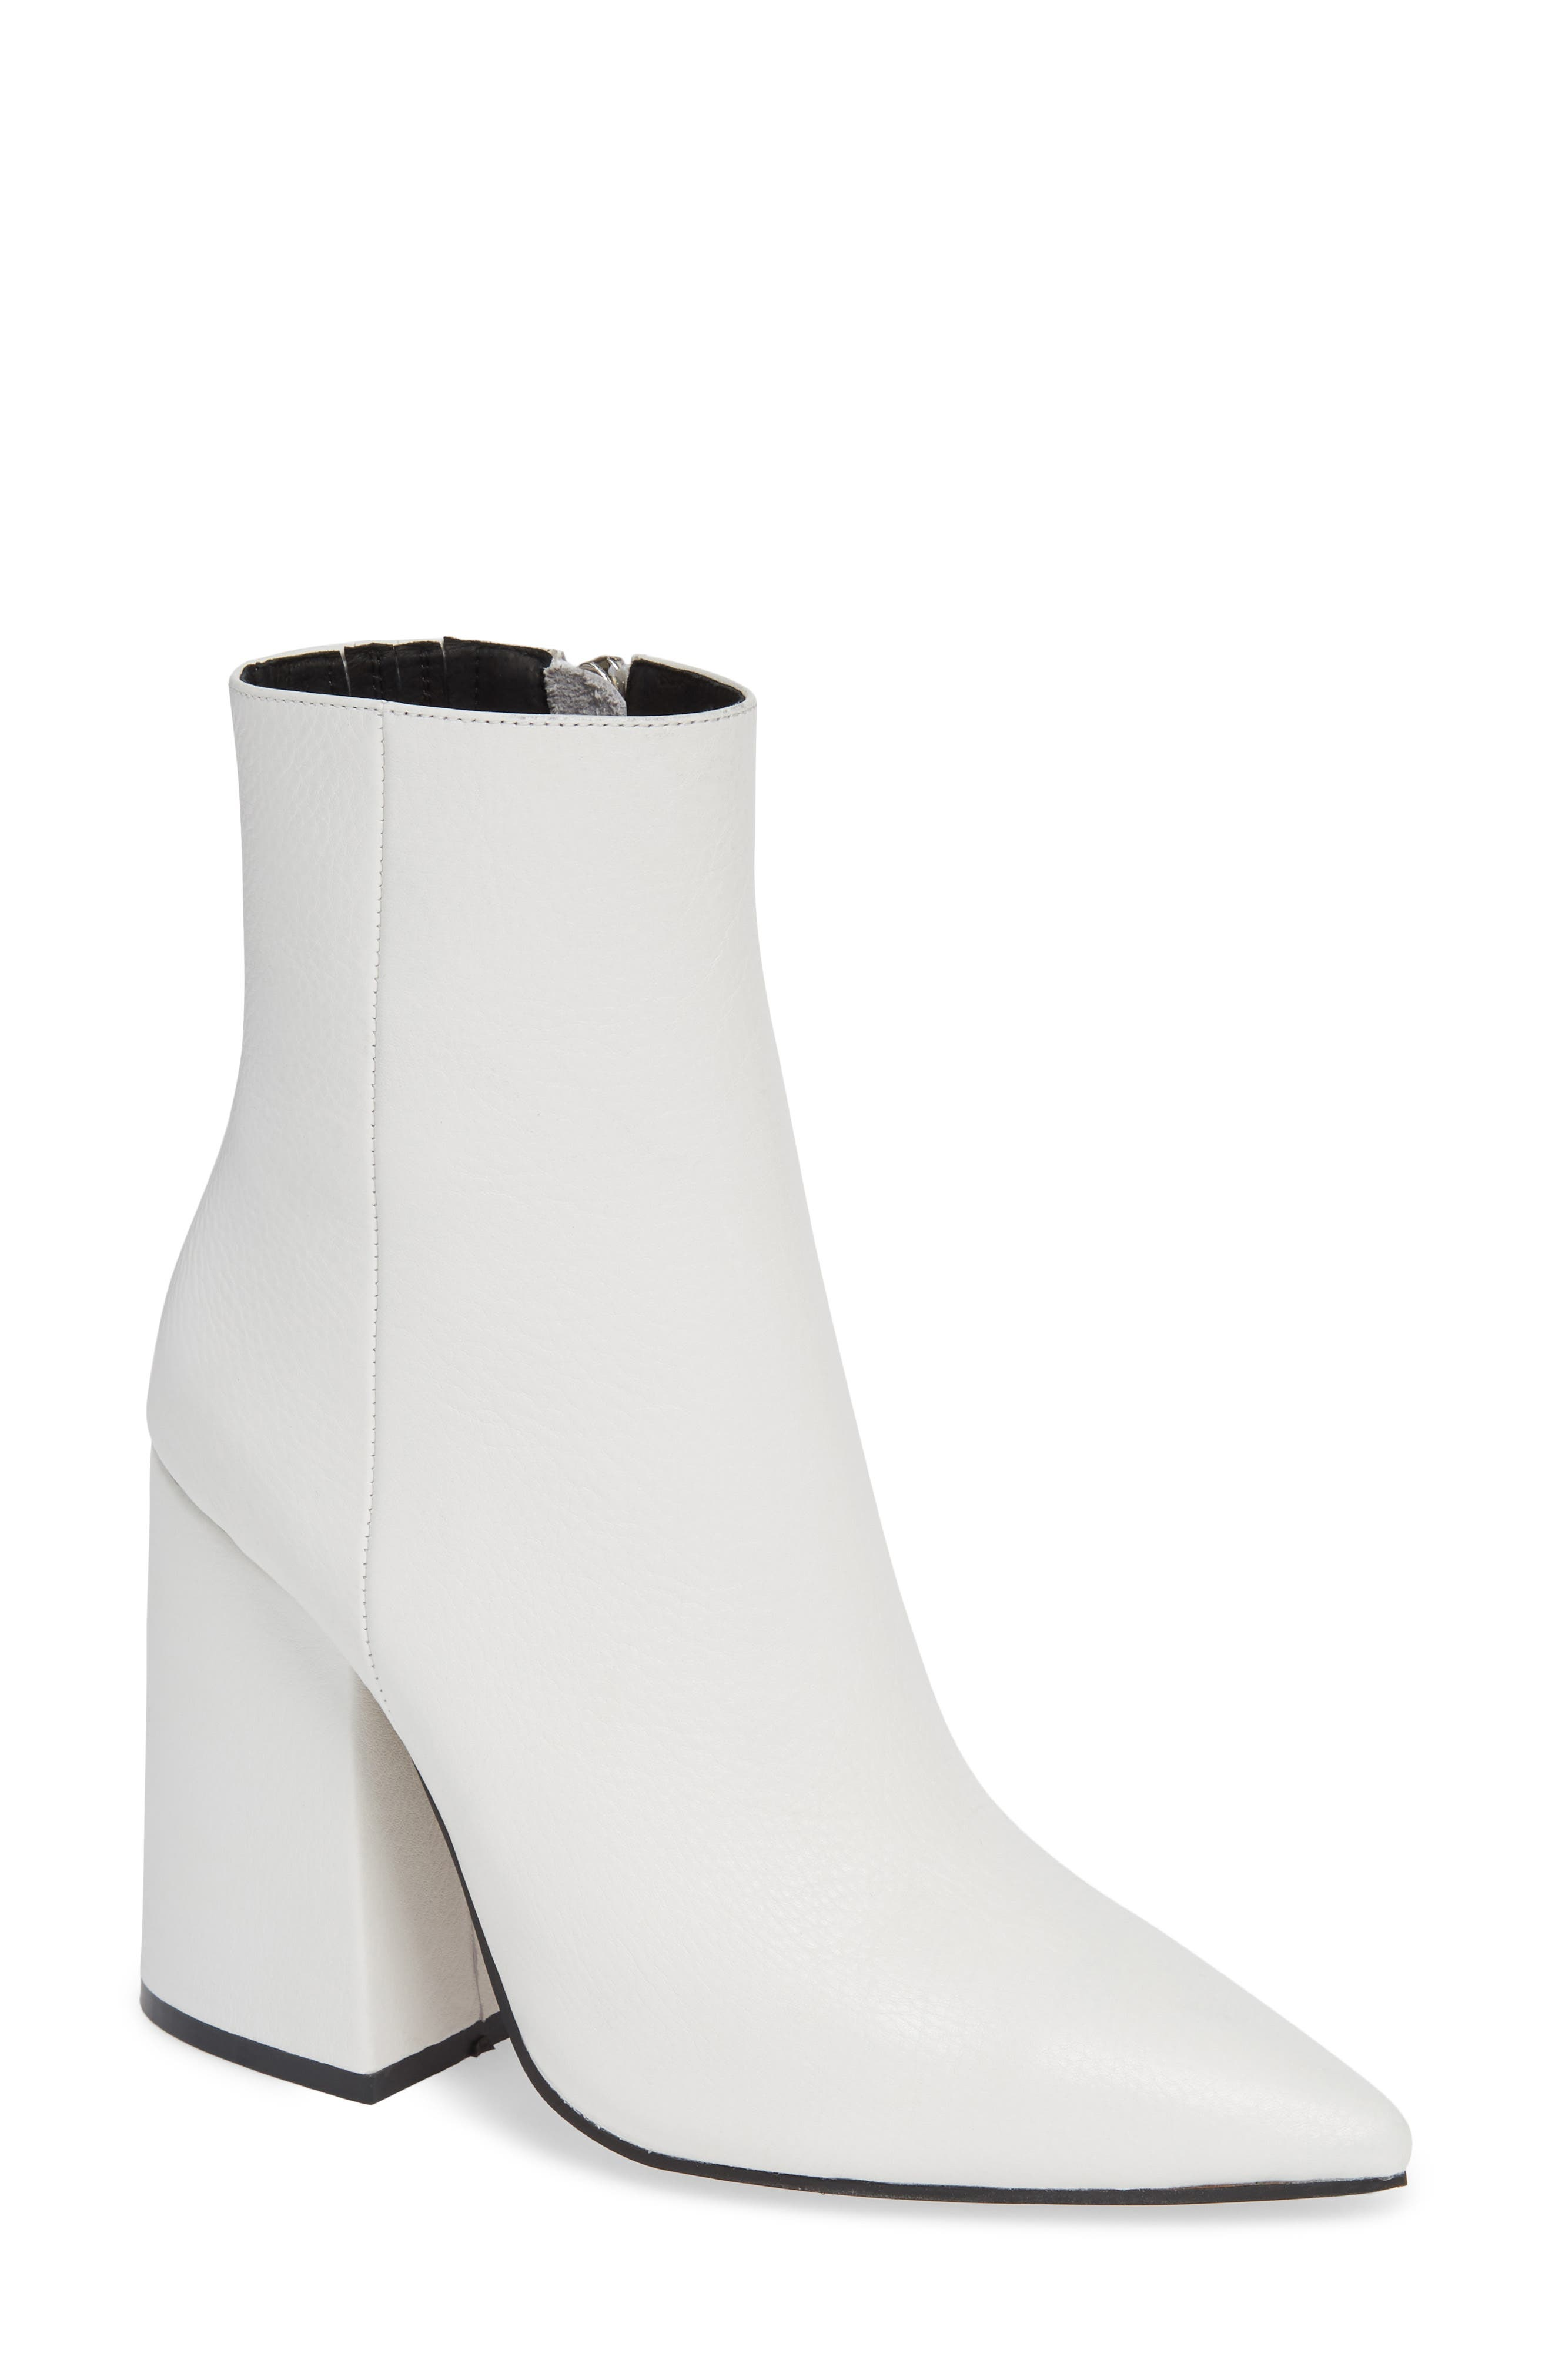 Ahara Bootie,                             Main thumbnail 1, color,                             WHITE LEATHER